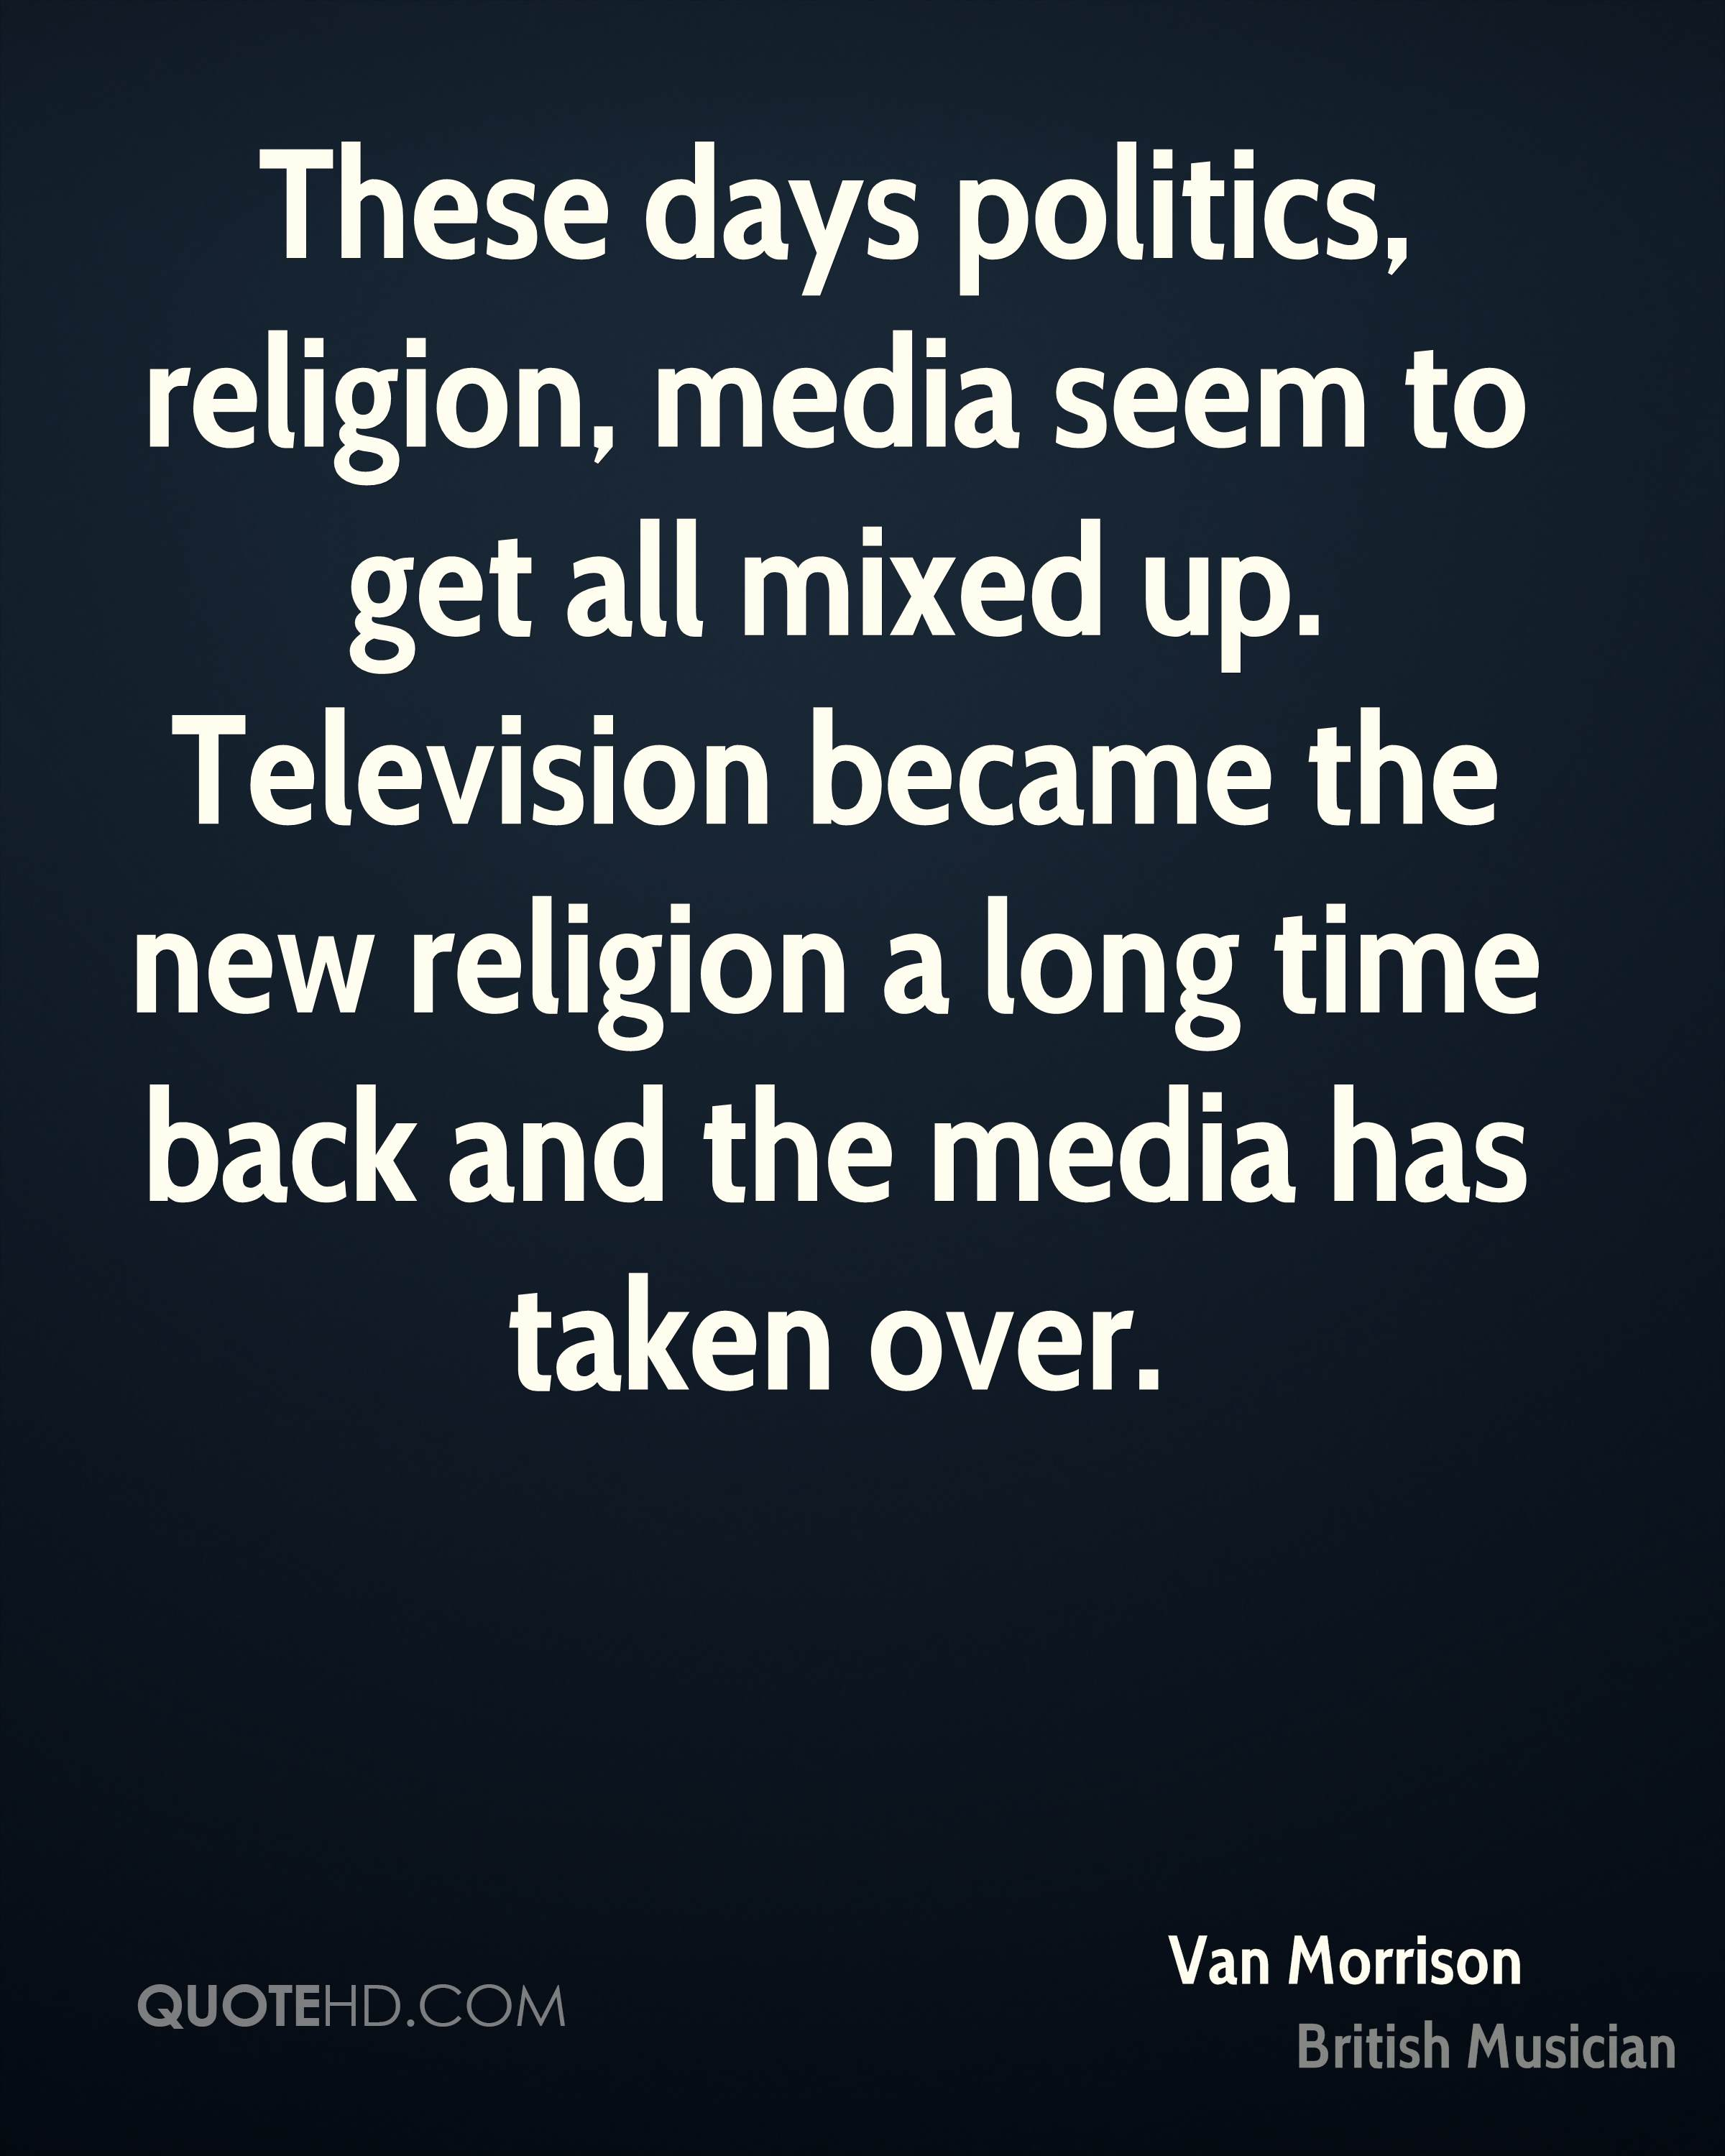 These days politics, religion, media seem to get all mixed up. Television became the new religion a long time back and the media has taken over.